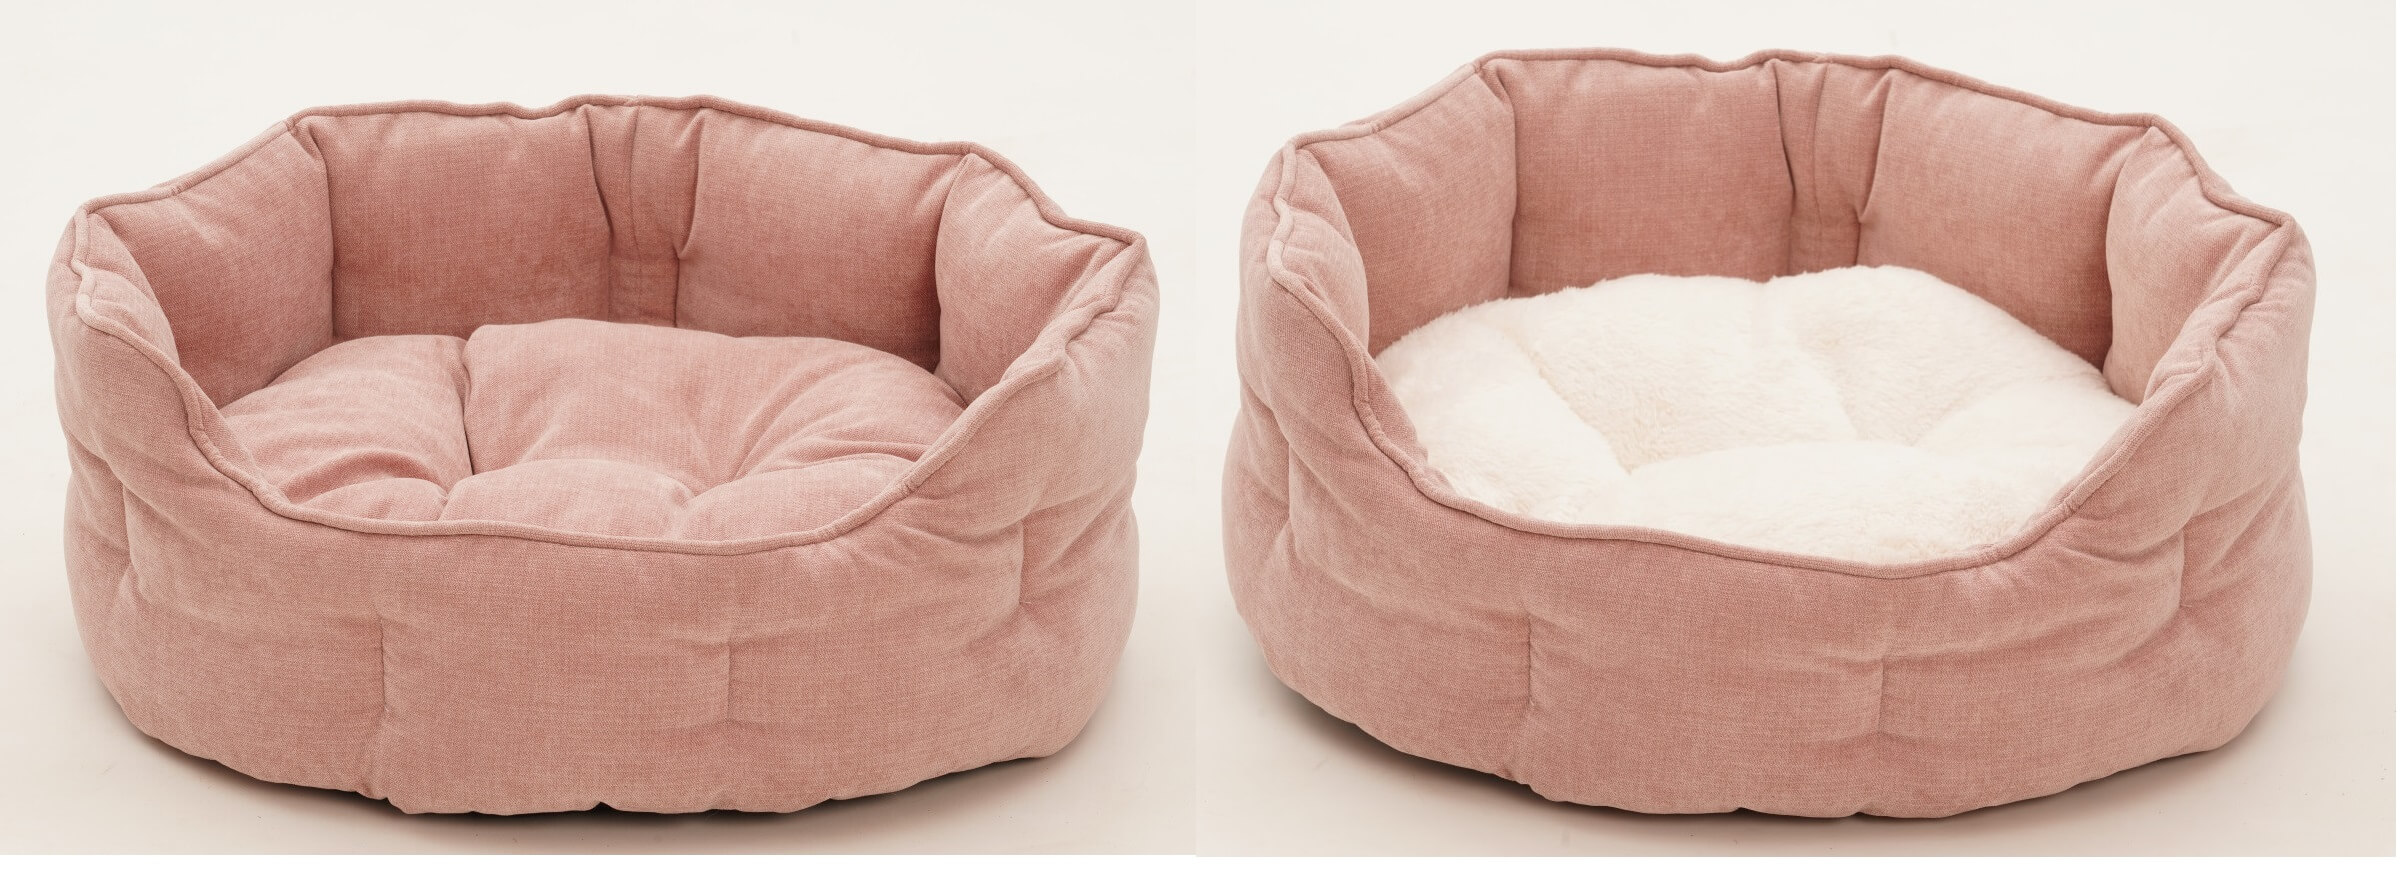 For all dogs and cats feeling rosy...Basket Abbey in amazing pink | DOGS in the CITY